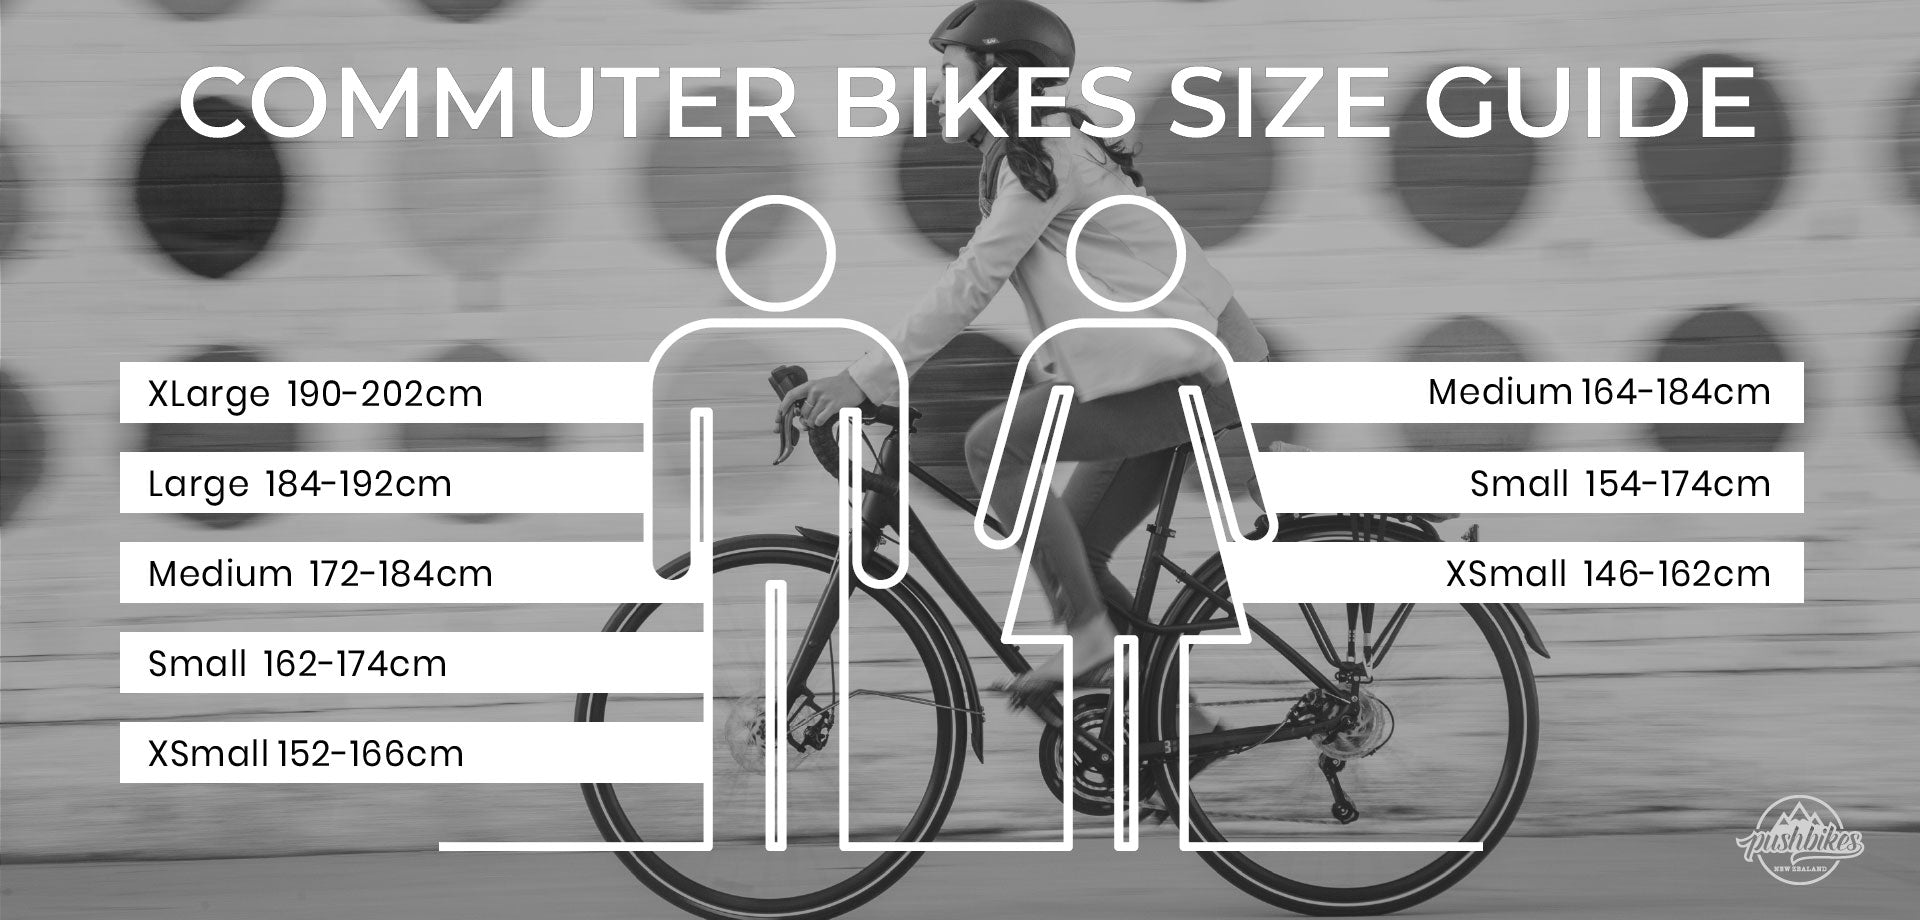 Commuter Bike Sizing Guide